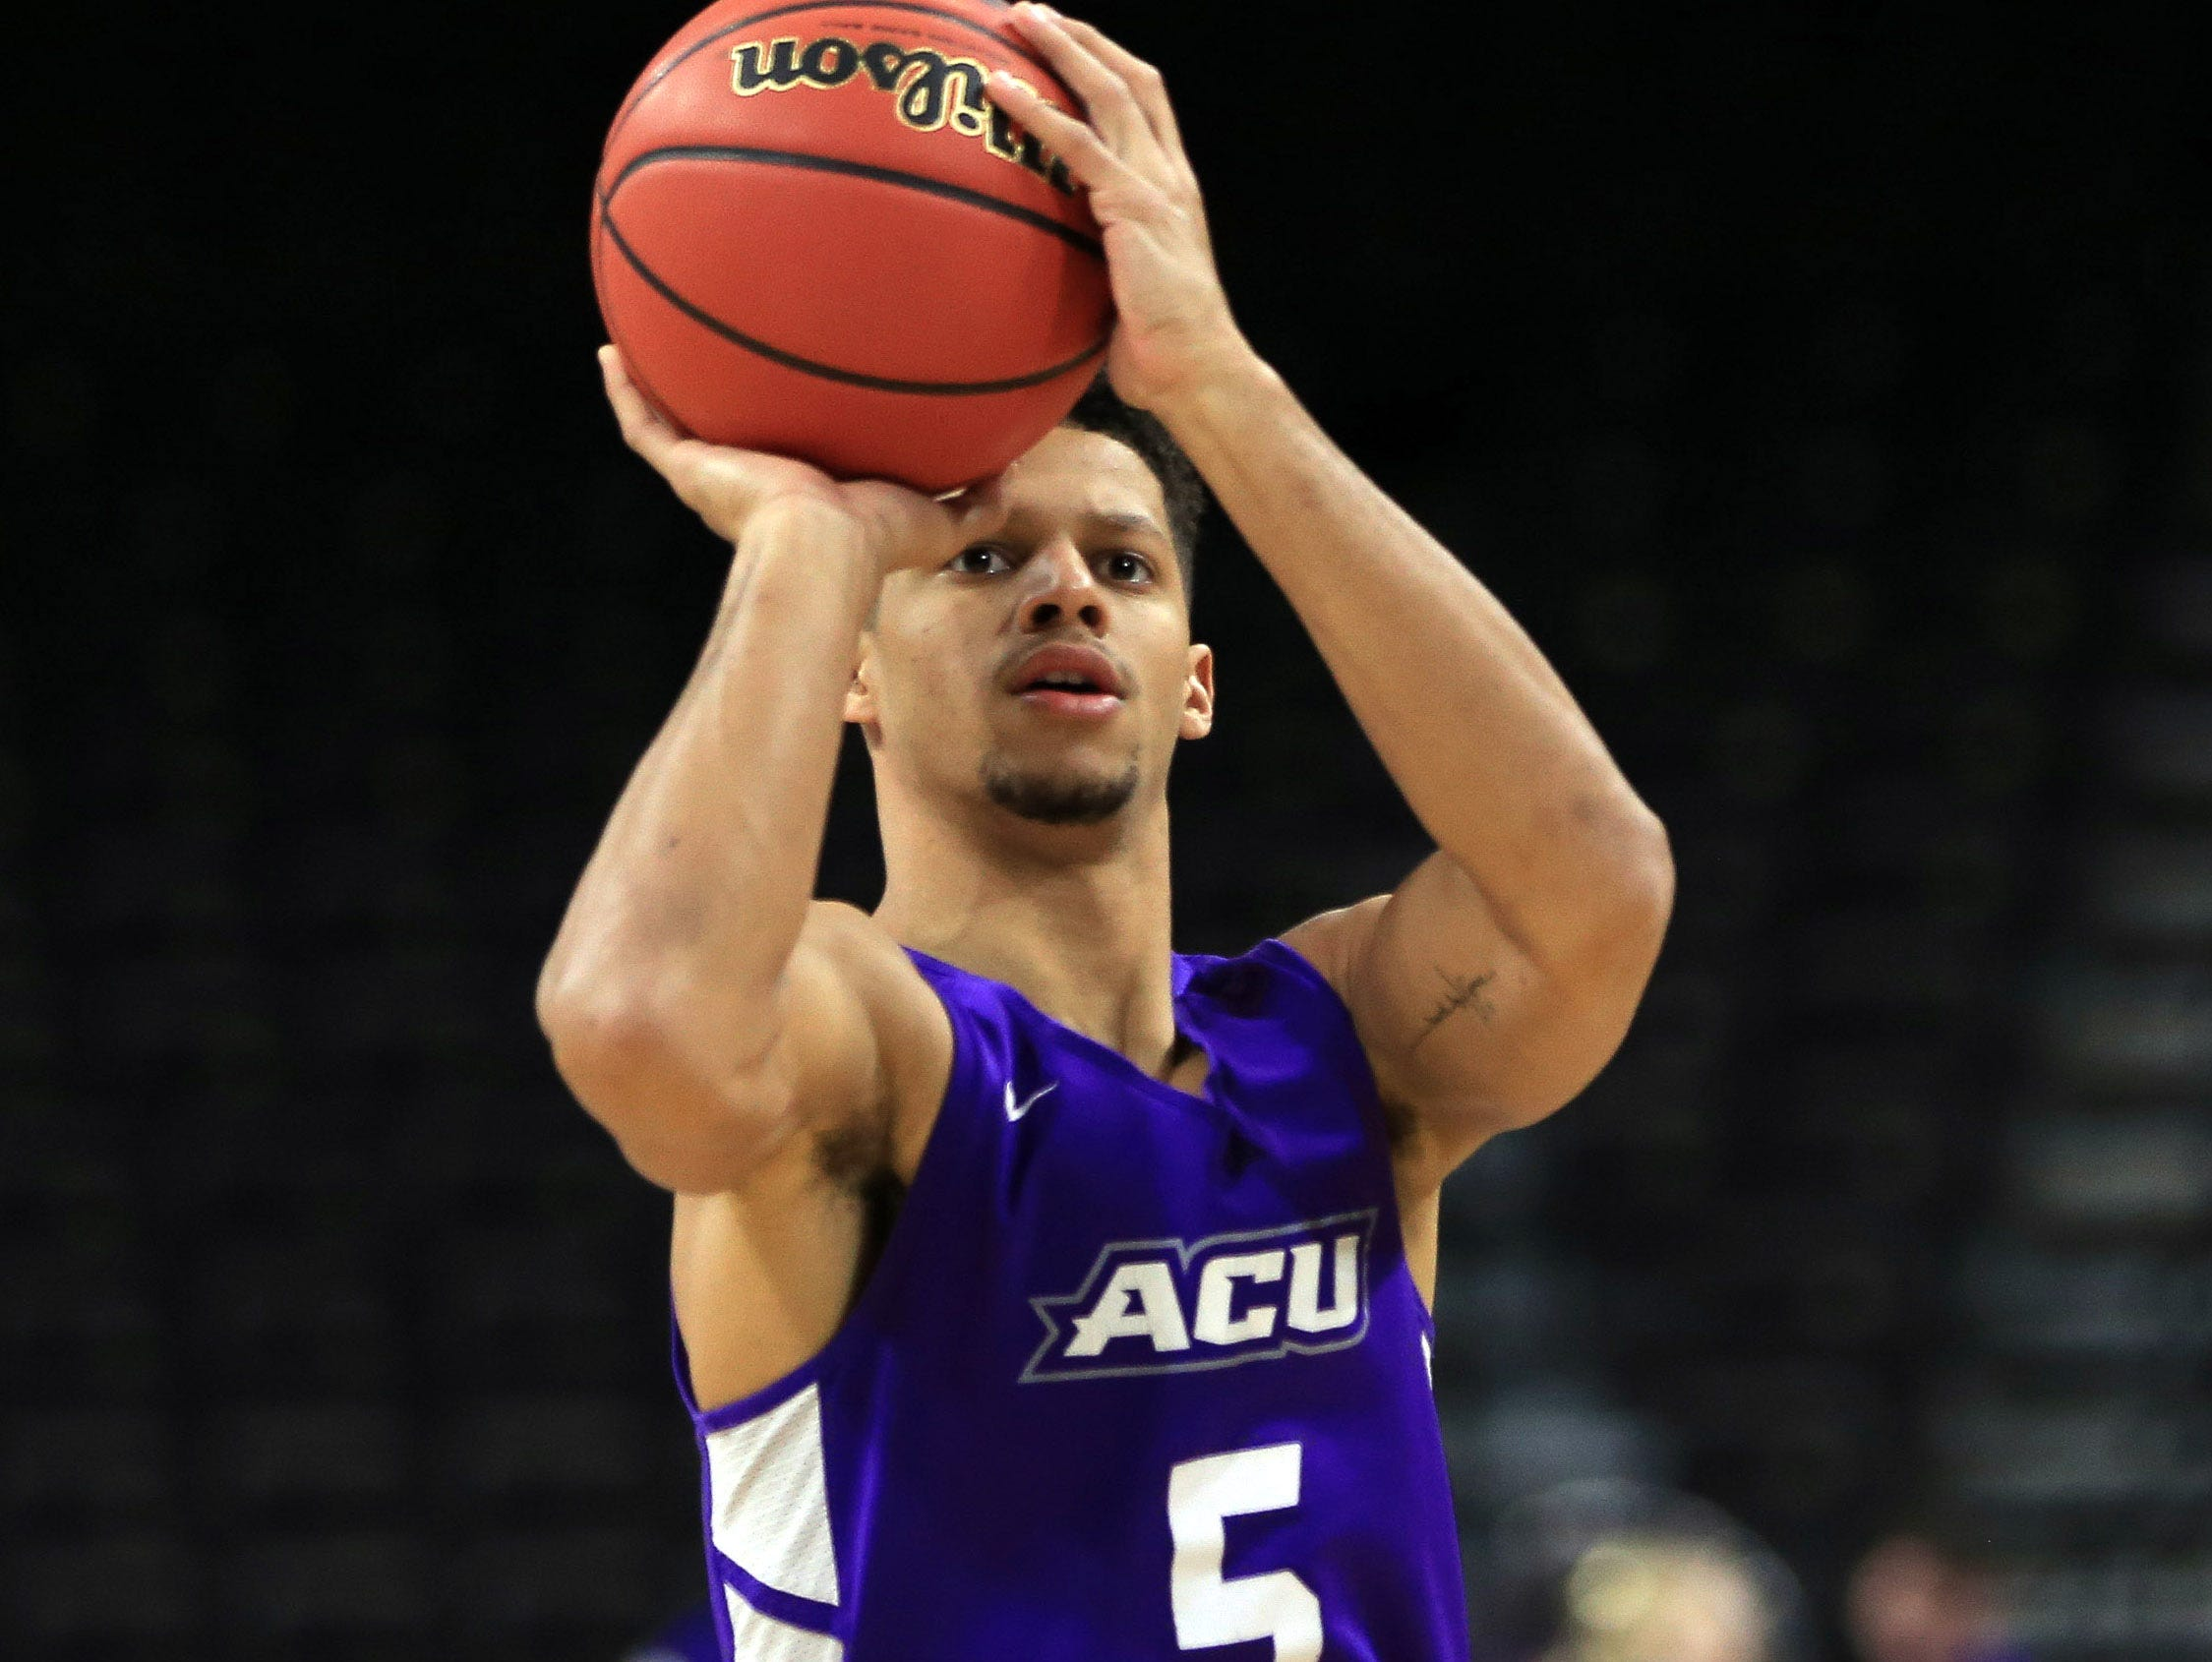 Mar 20, 2019; Jacksonville, FL, USA; Abilene Christian Wildcats guard Payten Ricks (5) during practice day before the first round of the 2019 NCAA Tournament at Jacksonville Veterans Memorial Arena. Mandatory Credit: Matt Stamey-USA TODAY Sports